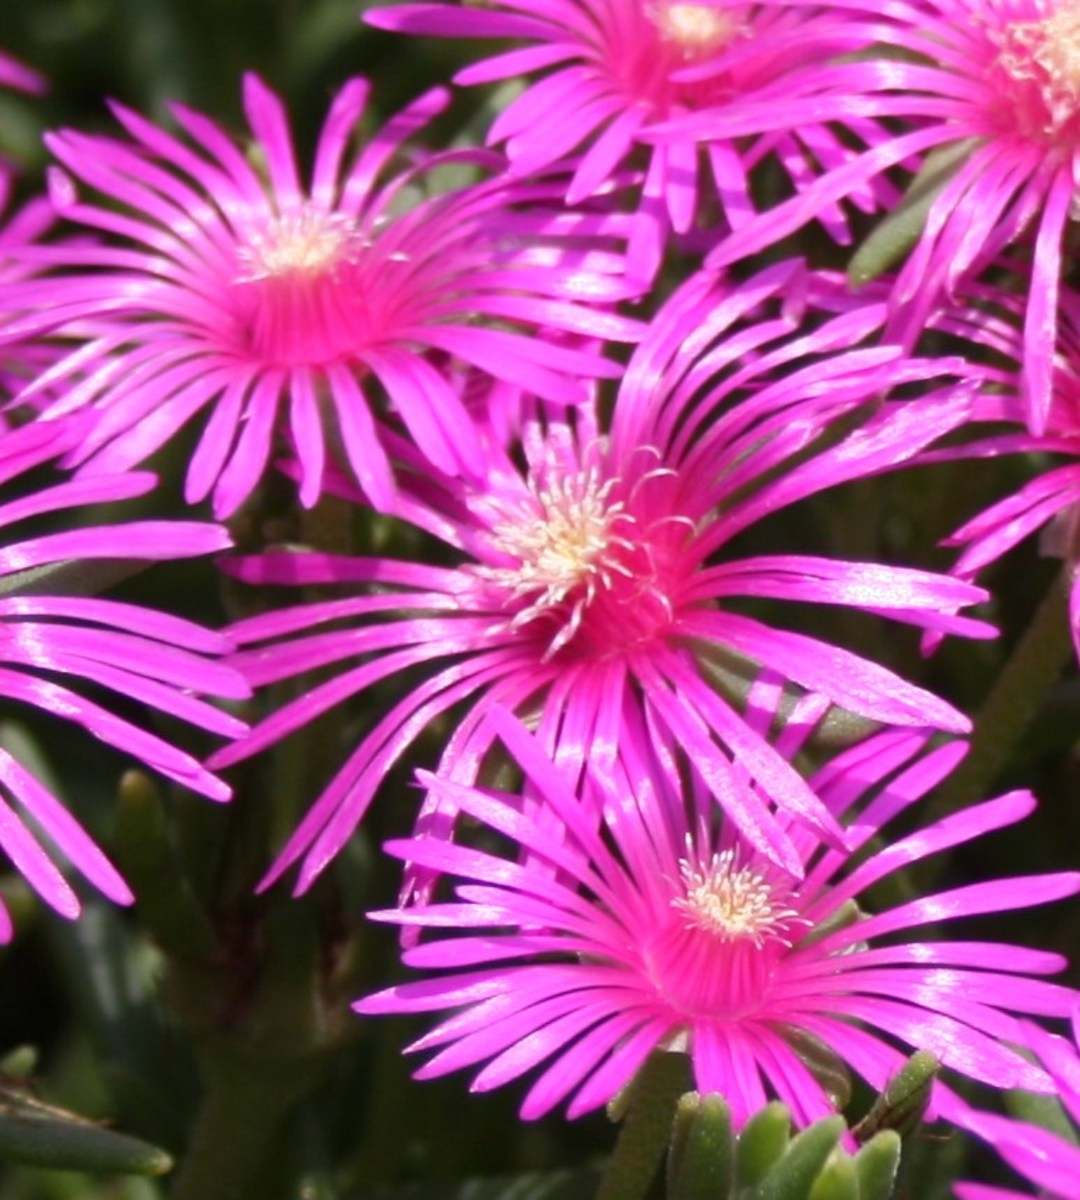 The hardy purple ice plant, Delosperma cooperi, is a pretty hot pink ground cover.